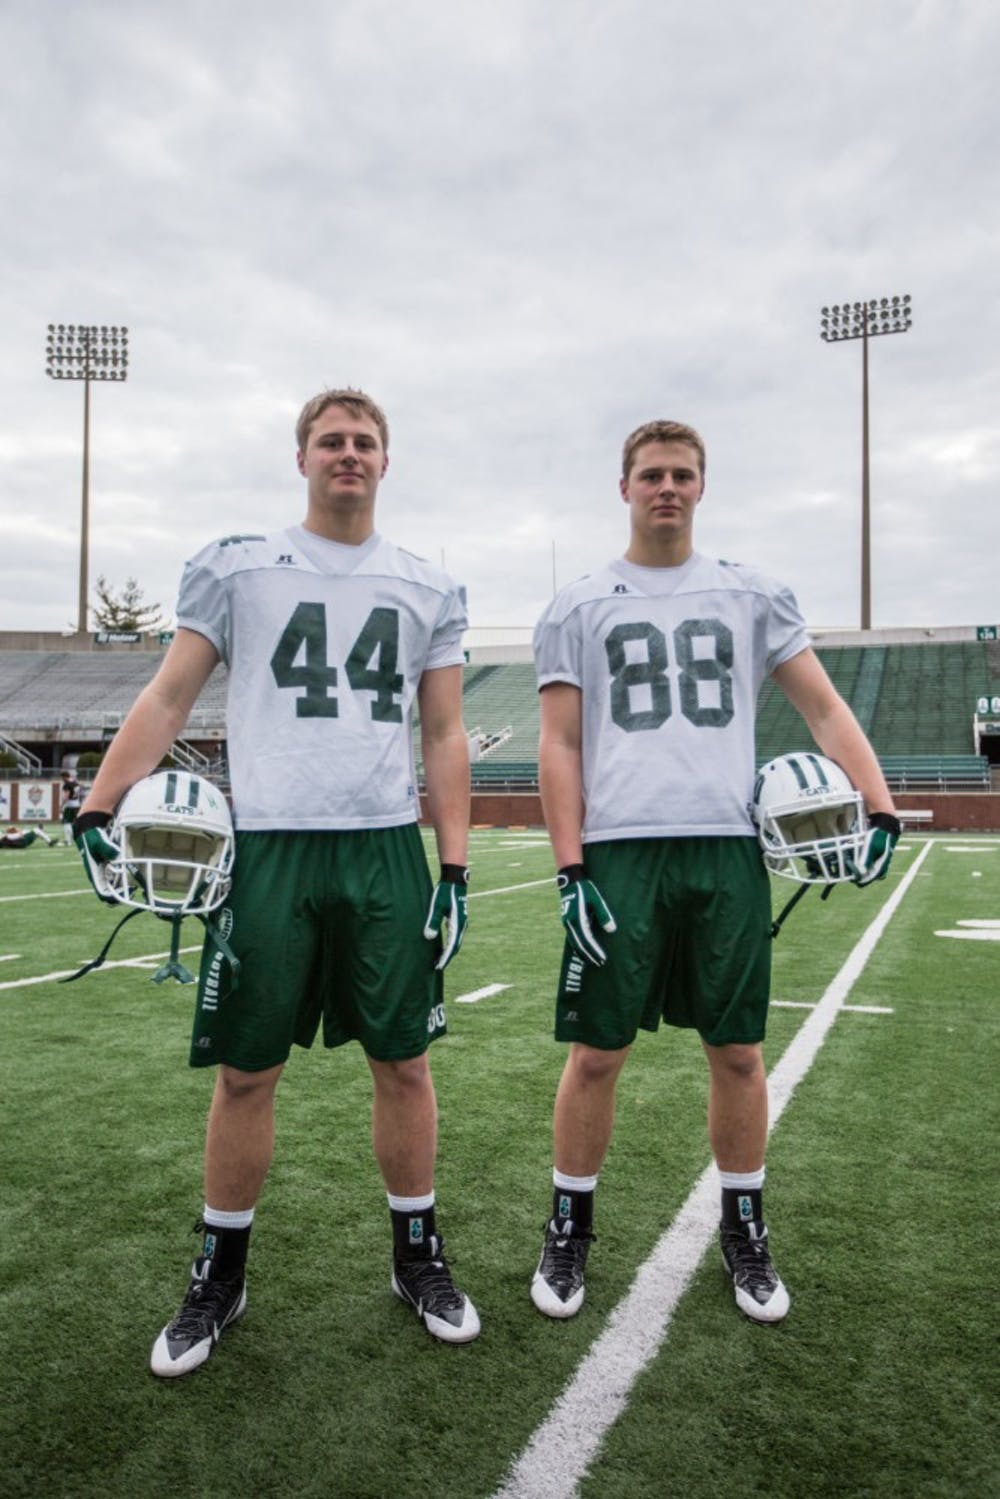 Ohio 'sees double' in rising success of twin tight ends